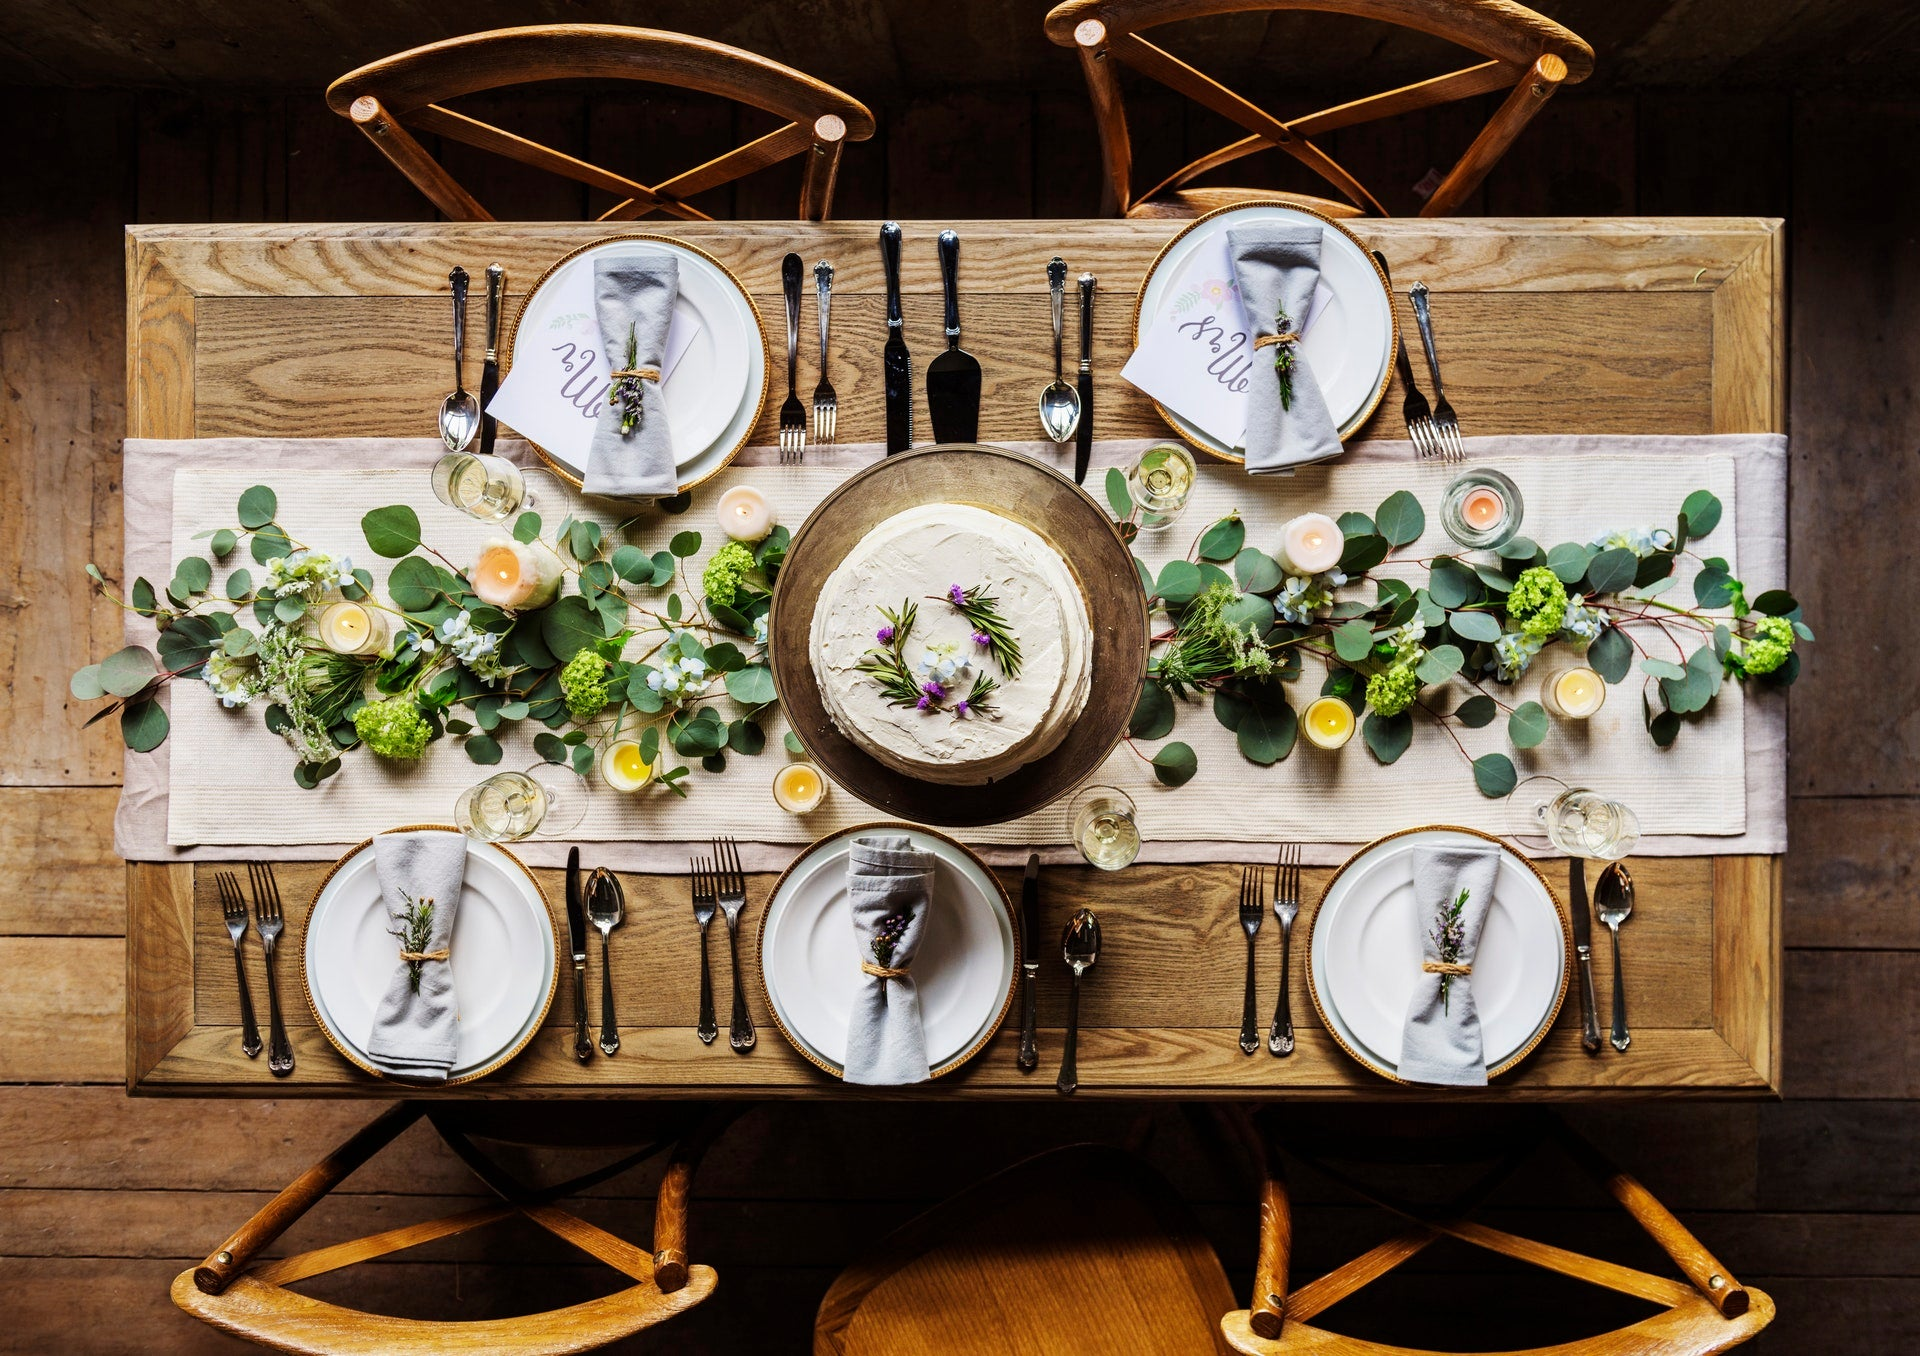 Table setting in zero waste fashion